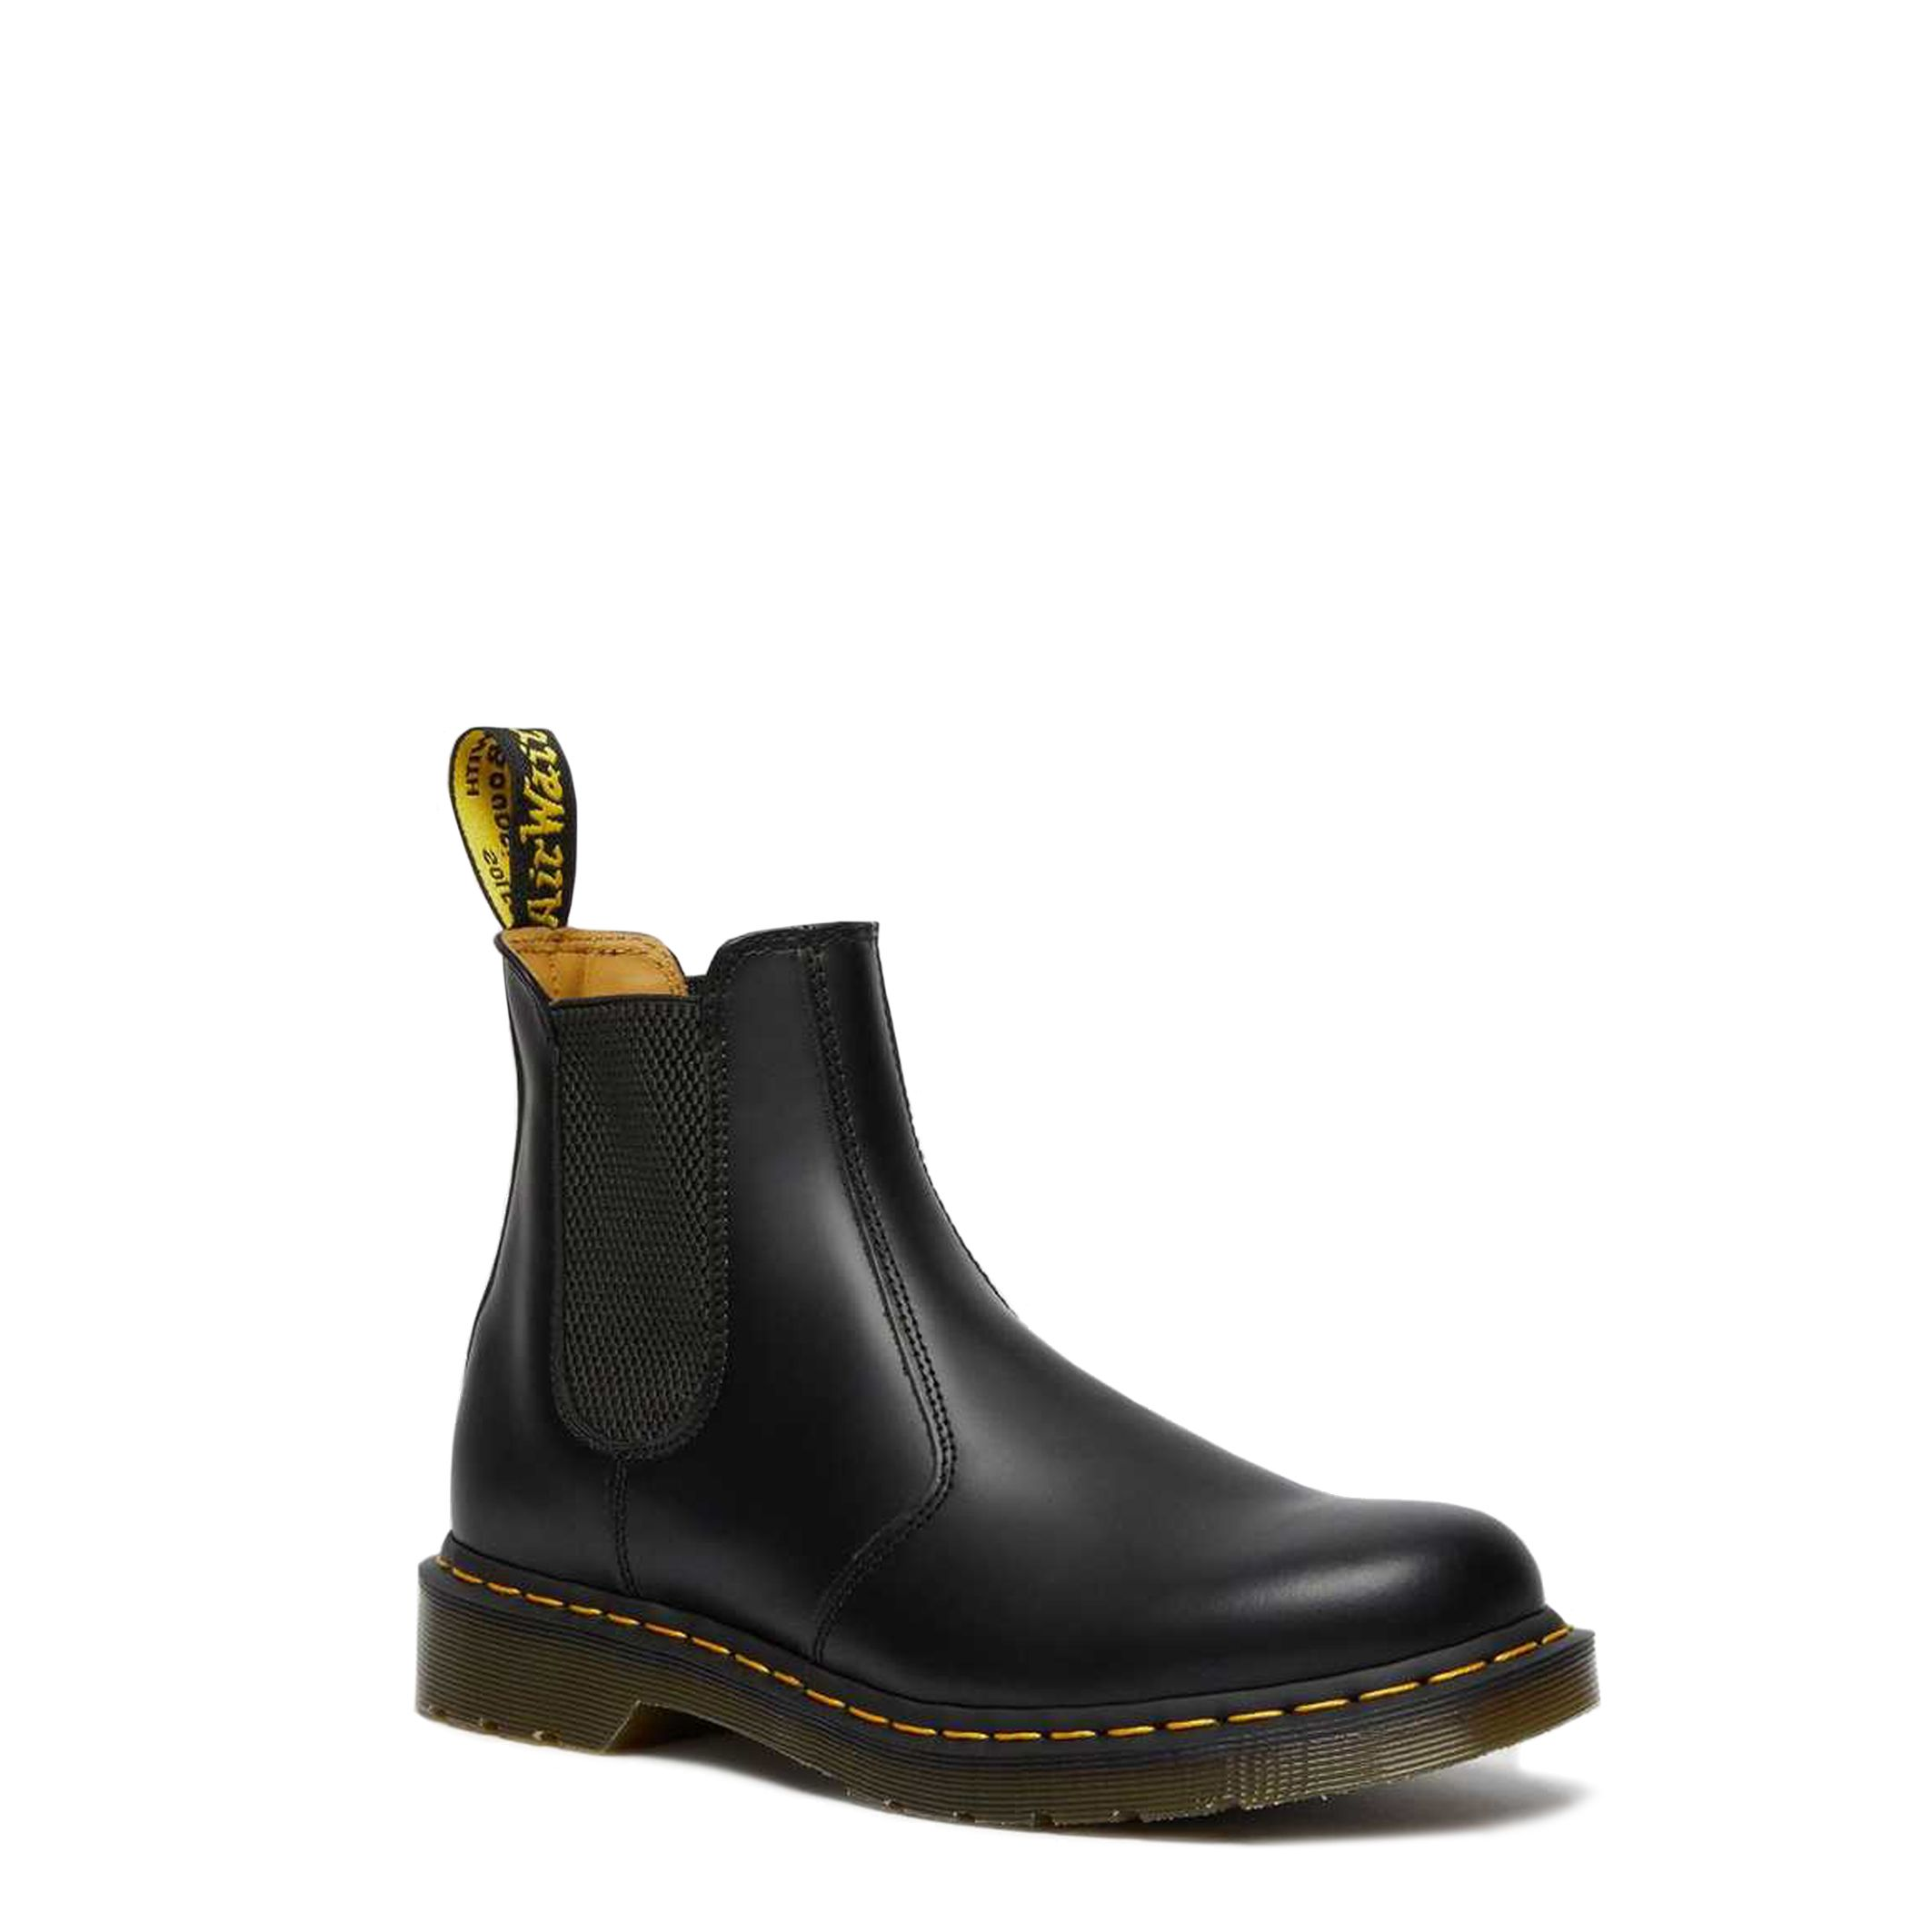 Dr Martens – 2976_YELLOW_STITCH